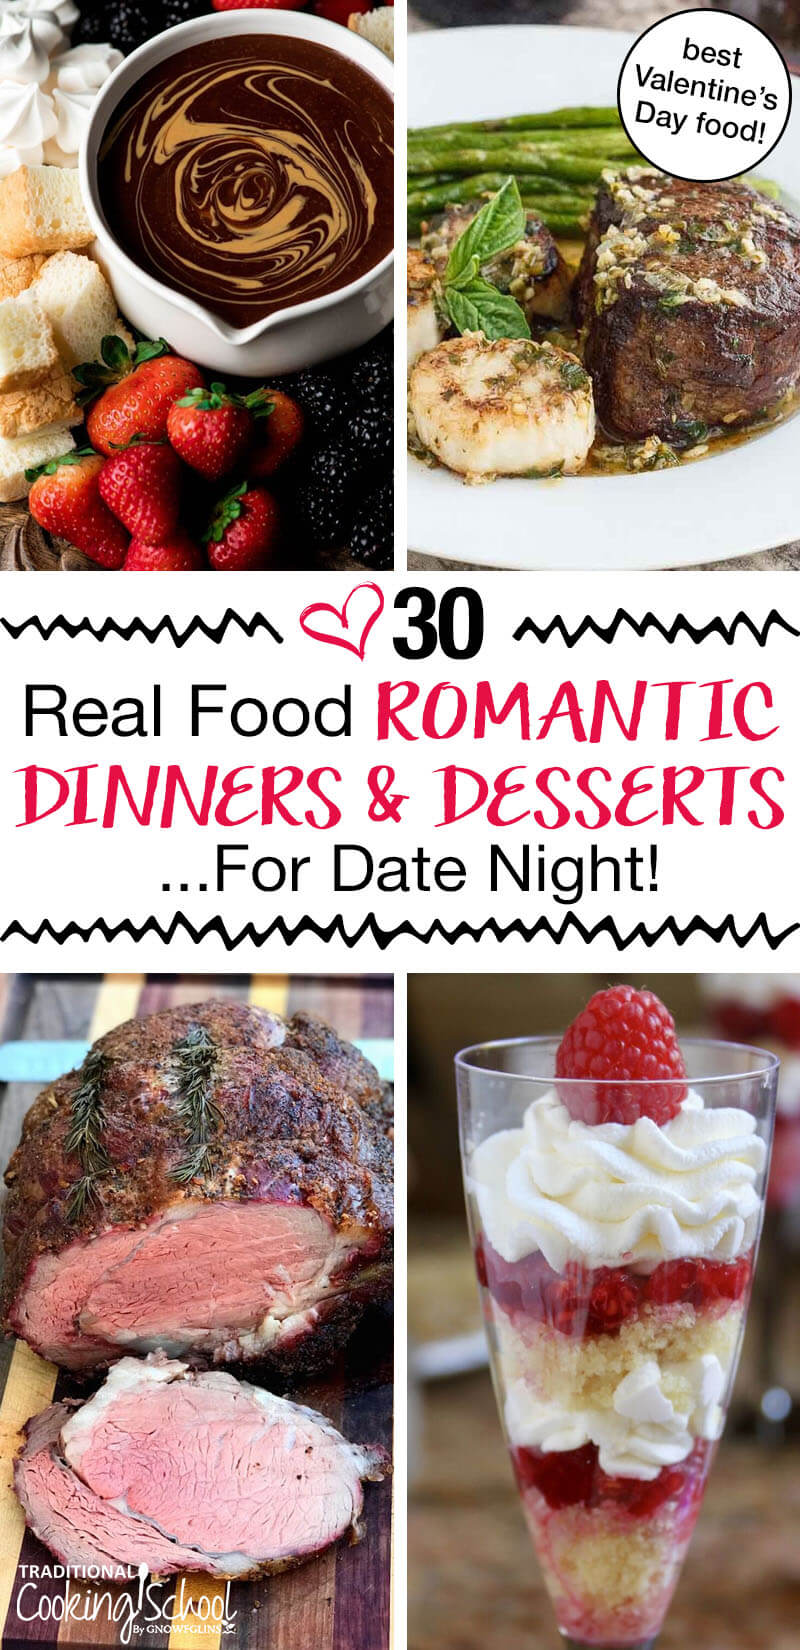 "photo collage of romantic foods, including peanut butter chocolate fondue and steak, with text overlay: ""30 Real Food Romantic Dinners & Desserts For Date Night"""